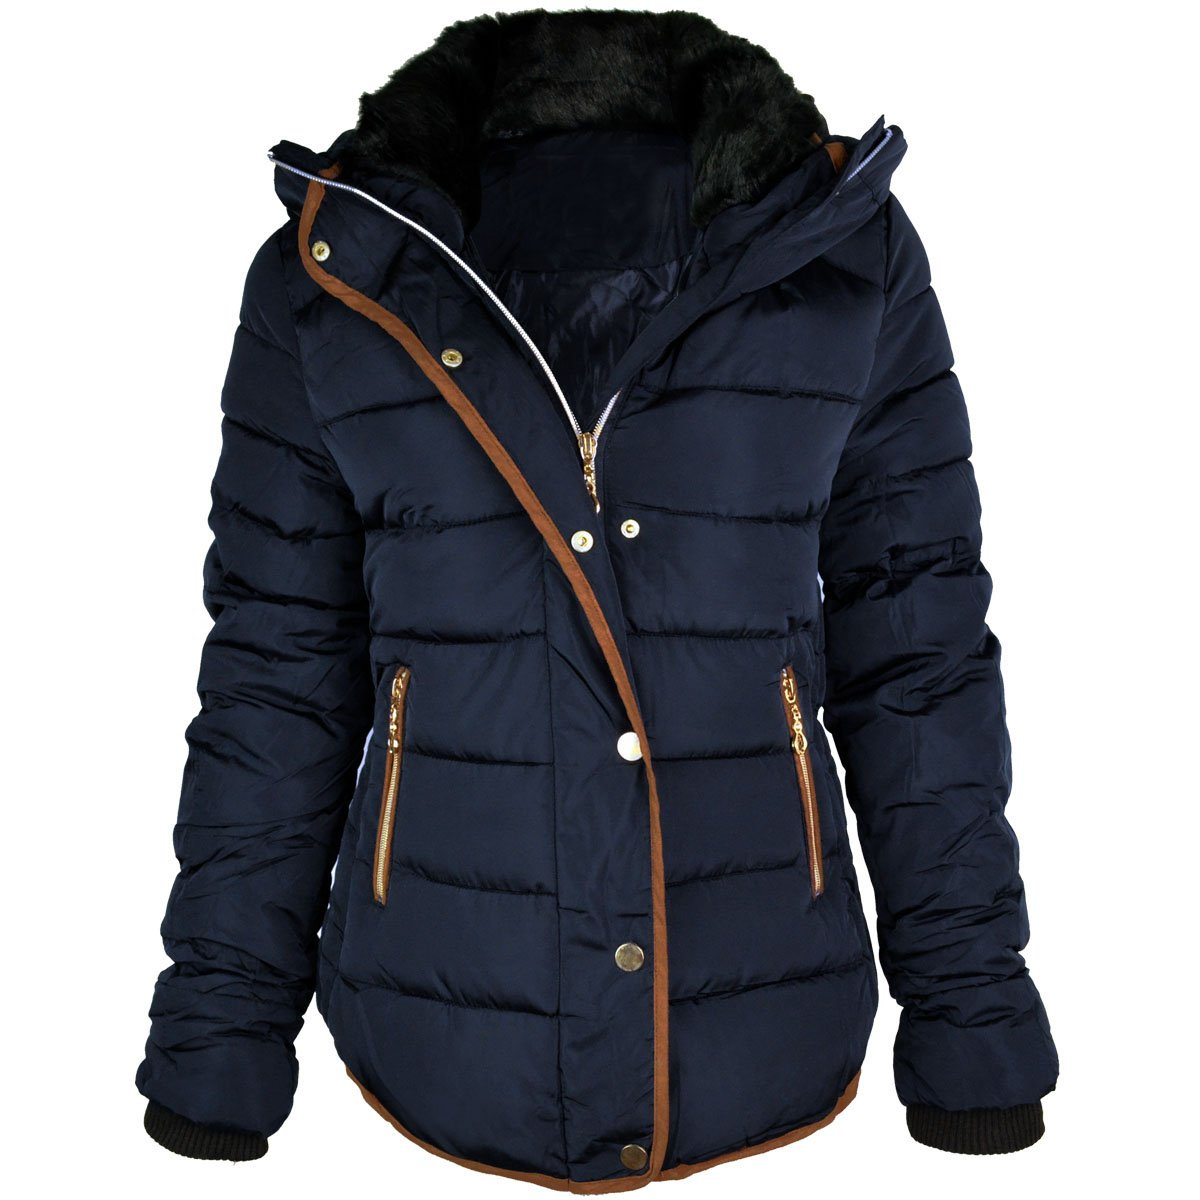 Fashion Thirsty Women's Quilted Hooded Winter Puffer Coat at ... : quilted ladies coat - Adamdwight.com